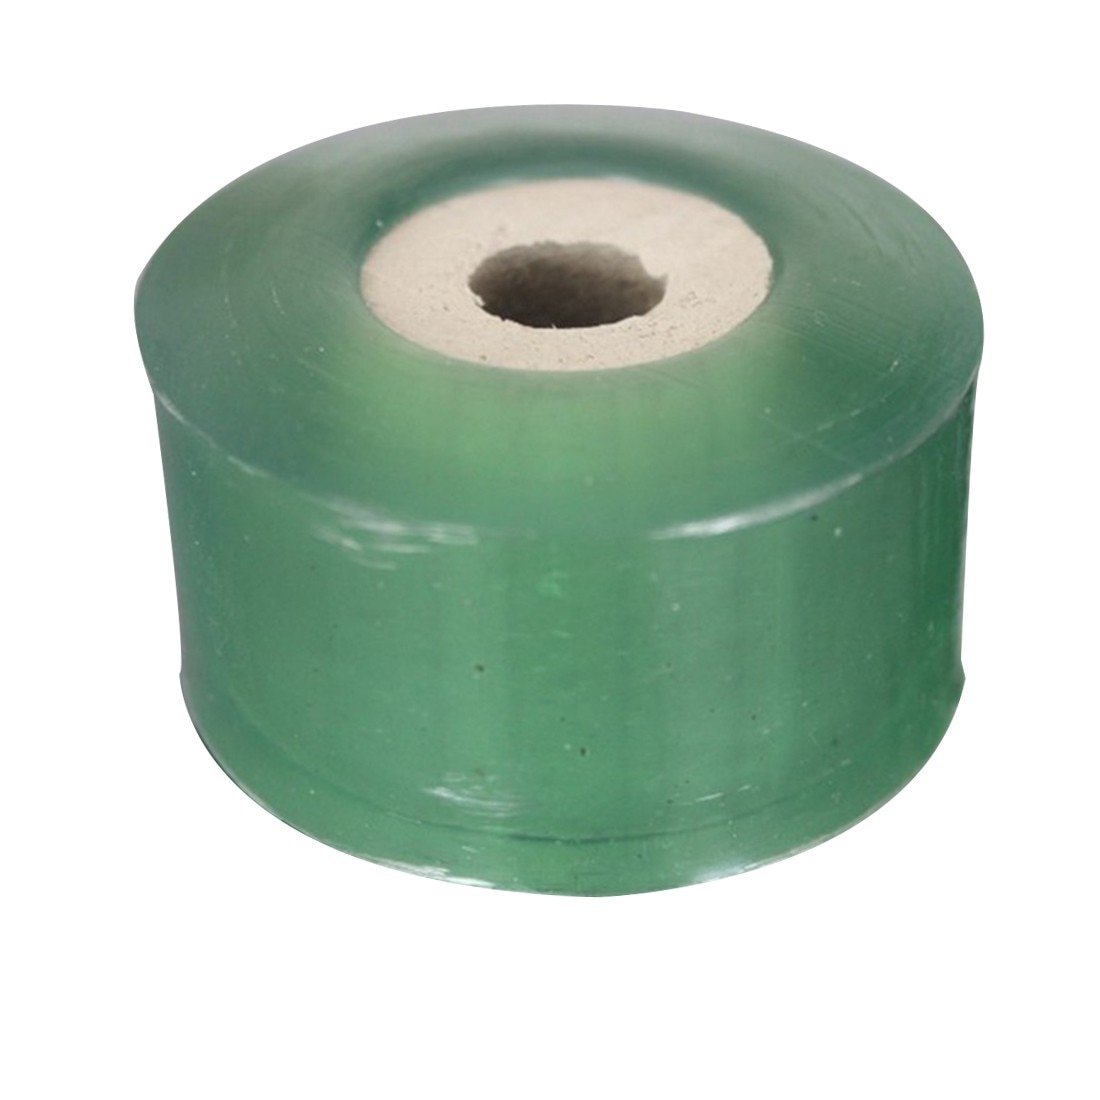 3cm-Nursery-Stretchable-Gardening-Tape-Fruit-Tree-Grafting-Tape-Garden-Bind-Tape-Grafting-Tool-Accessories-100M.jpg